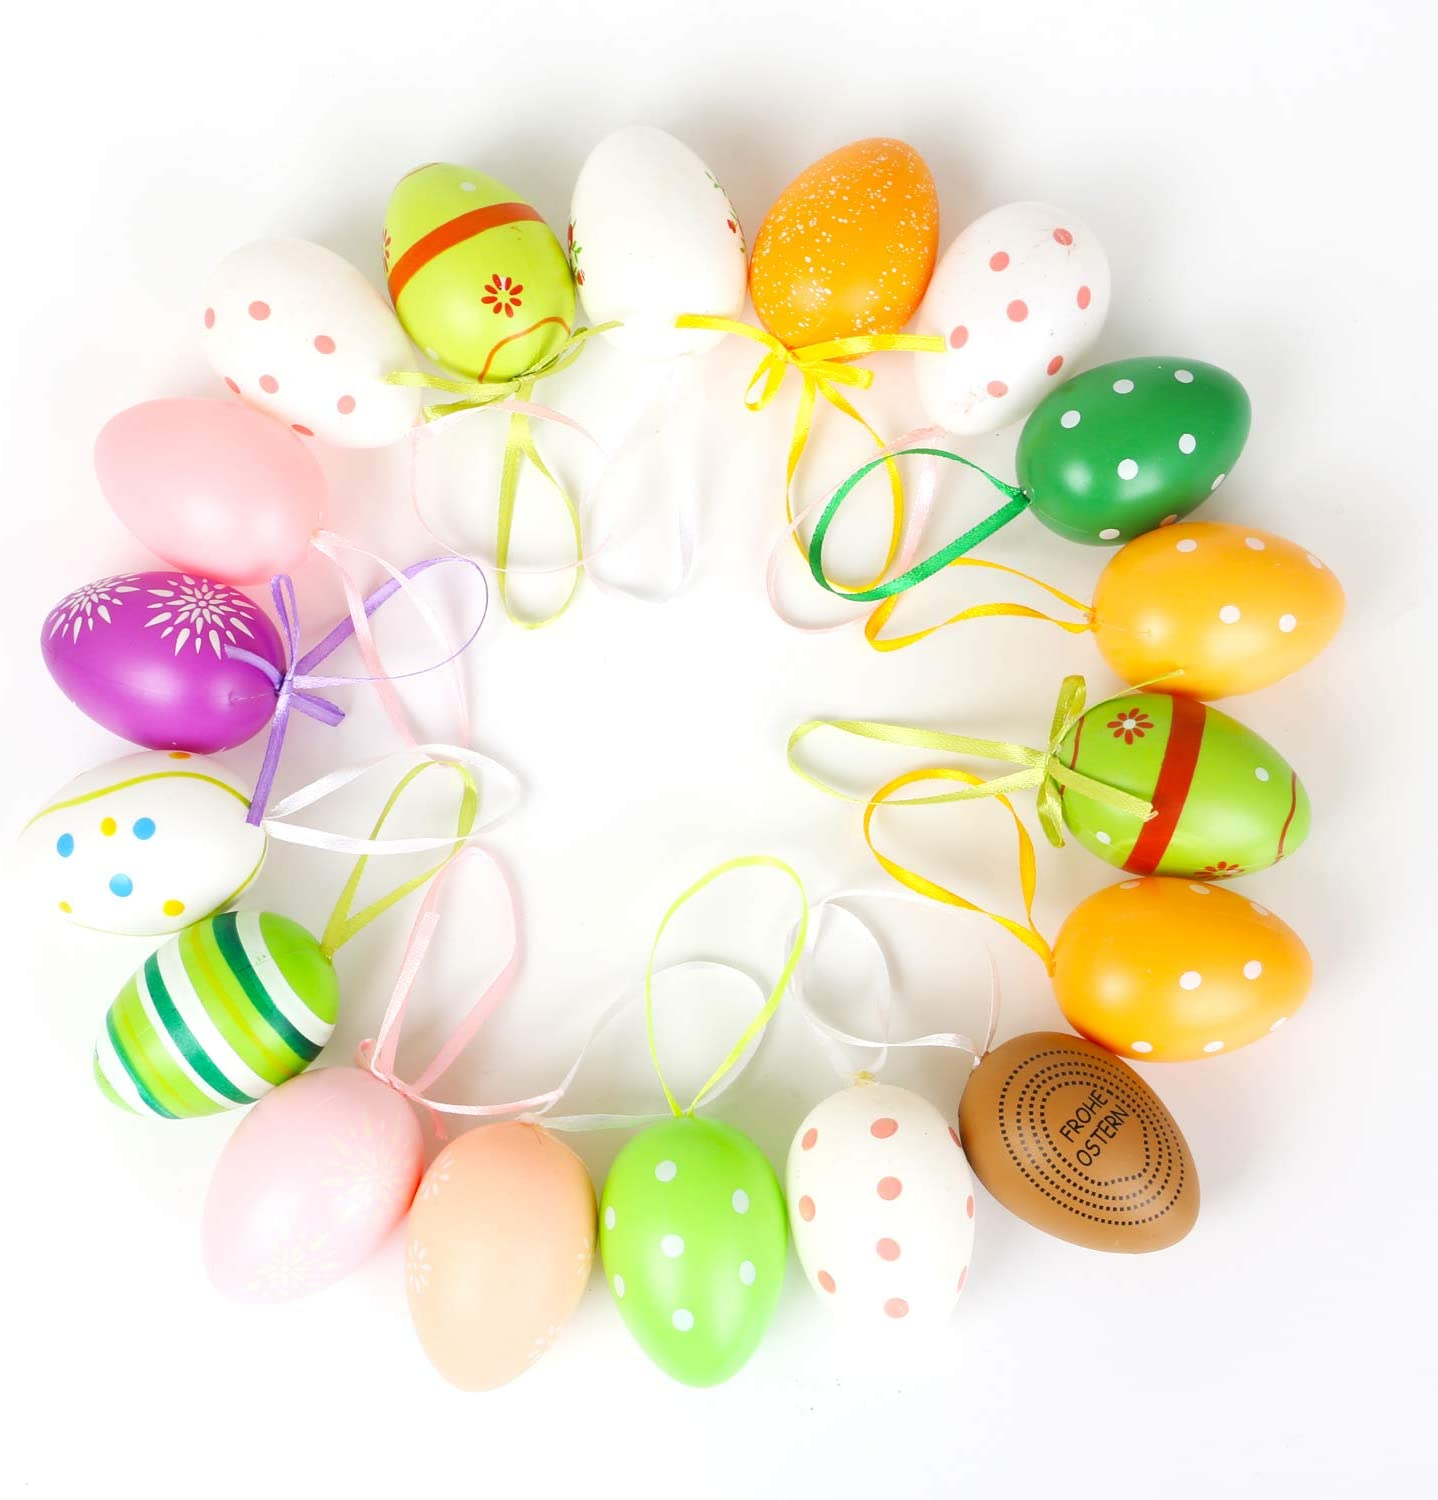 Drcurn 16 Pieces Easter Eggs Hanging Spring Egg Decorations Assorted Colors For Easter Egg Hunt Game And Festival Decoration Random Pattern And Color Amazon Co Uk Kitchen Home